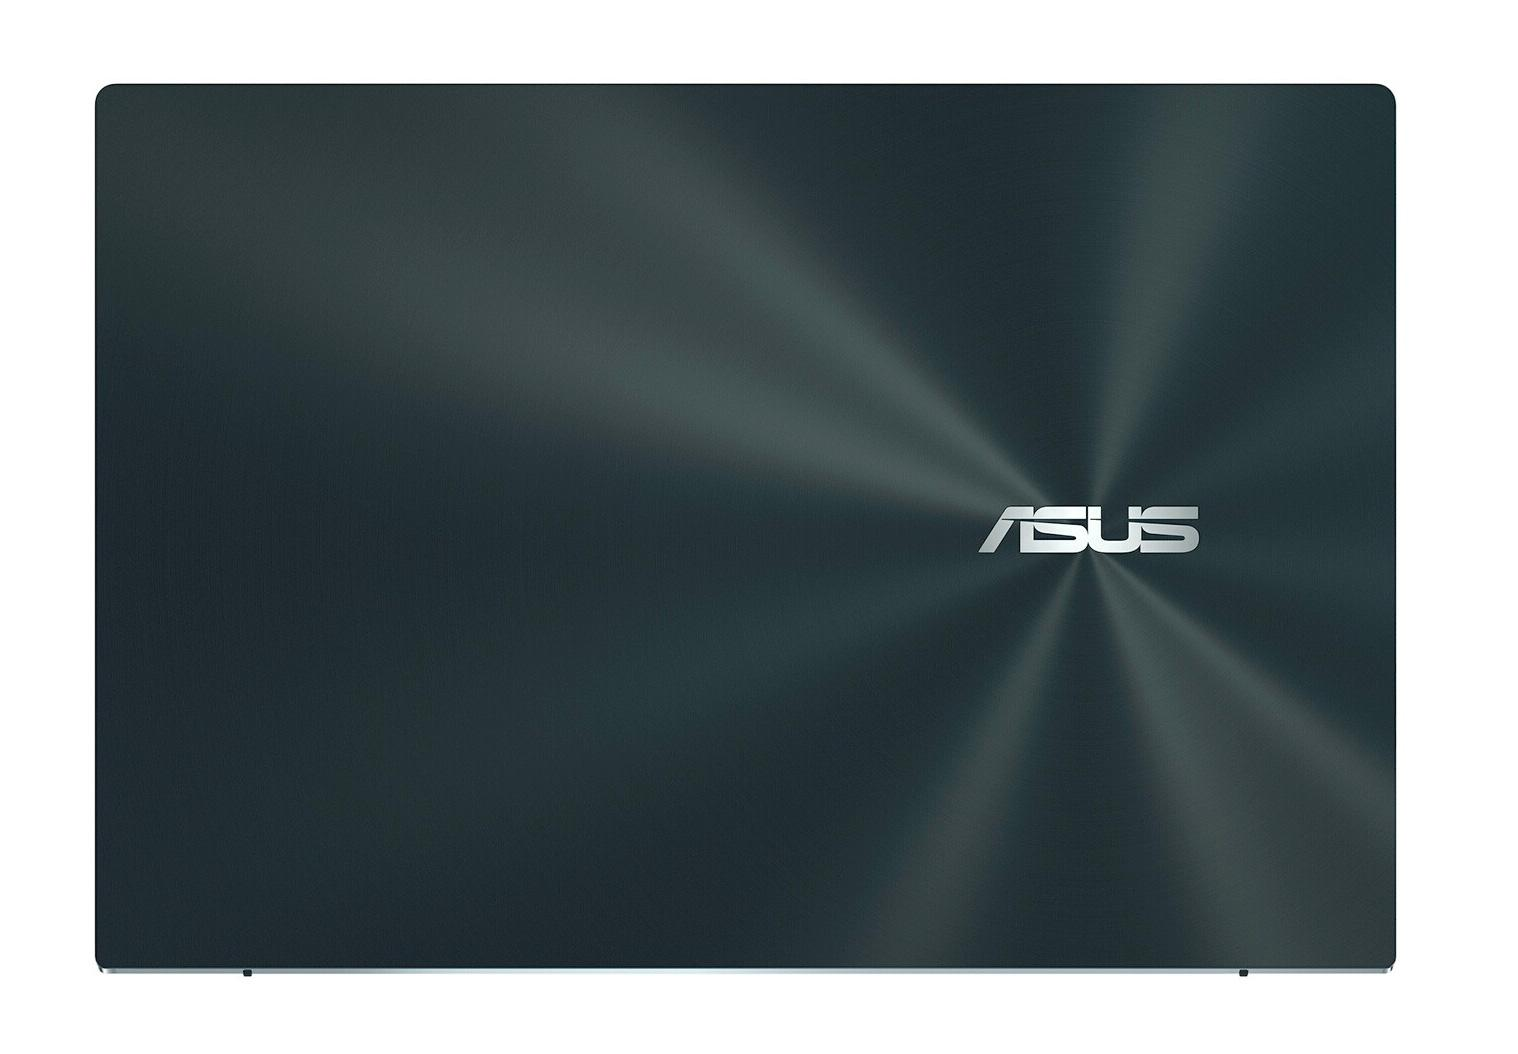 Ordinateur portable Asus ZenBook Duo UX482EG-HY142T Bleu/Noir - Tactile, MX450, ScreenPad Plus - photo 4